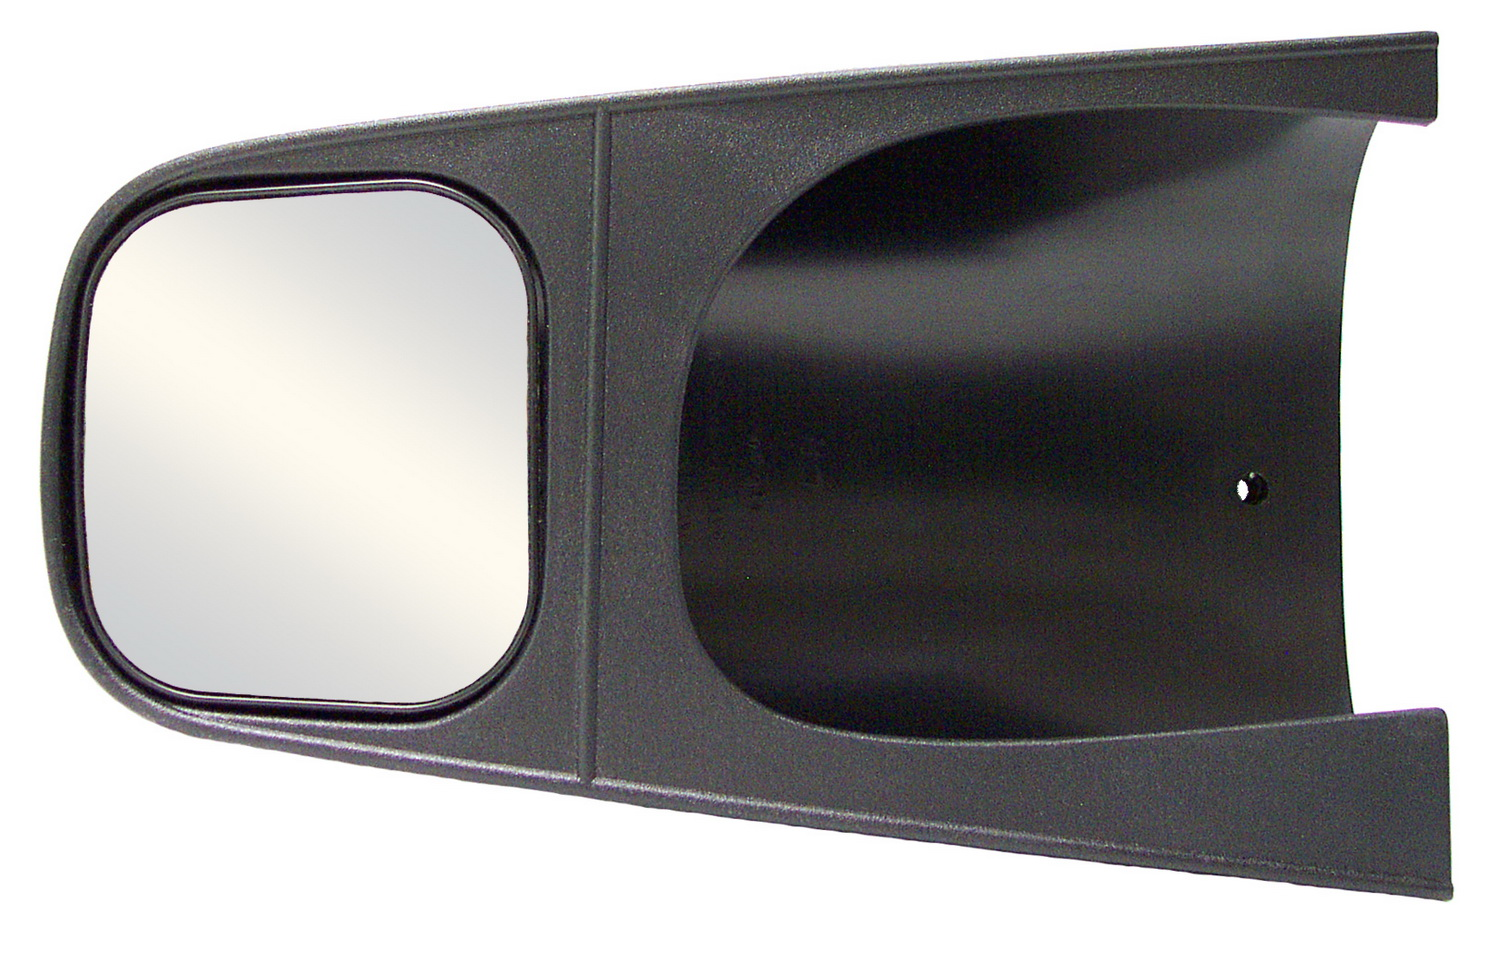 Cipa mirrors 11601 custom towing mirror new for sale in for Custom mirrors